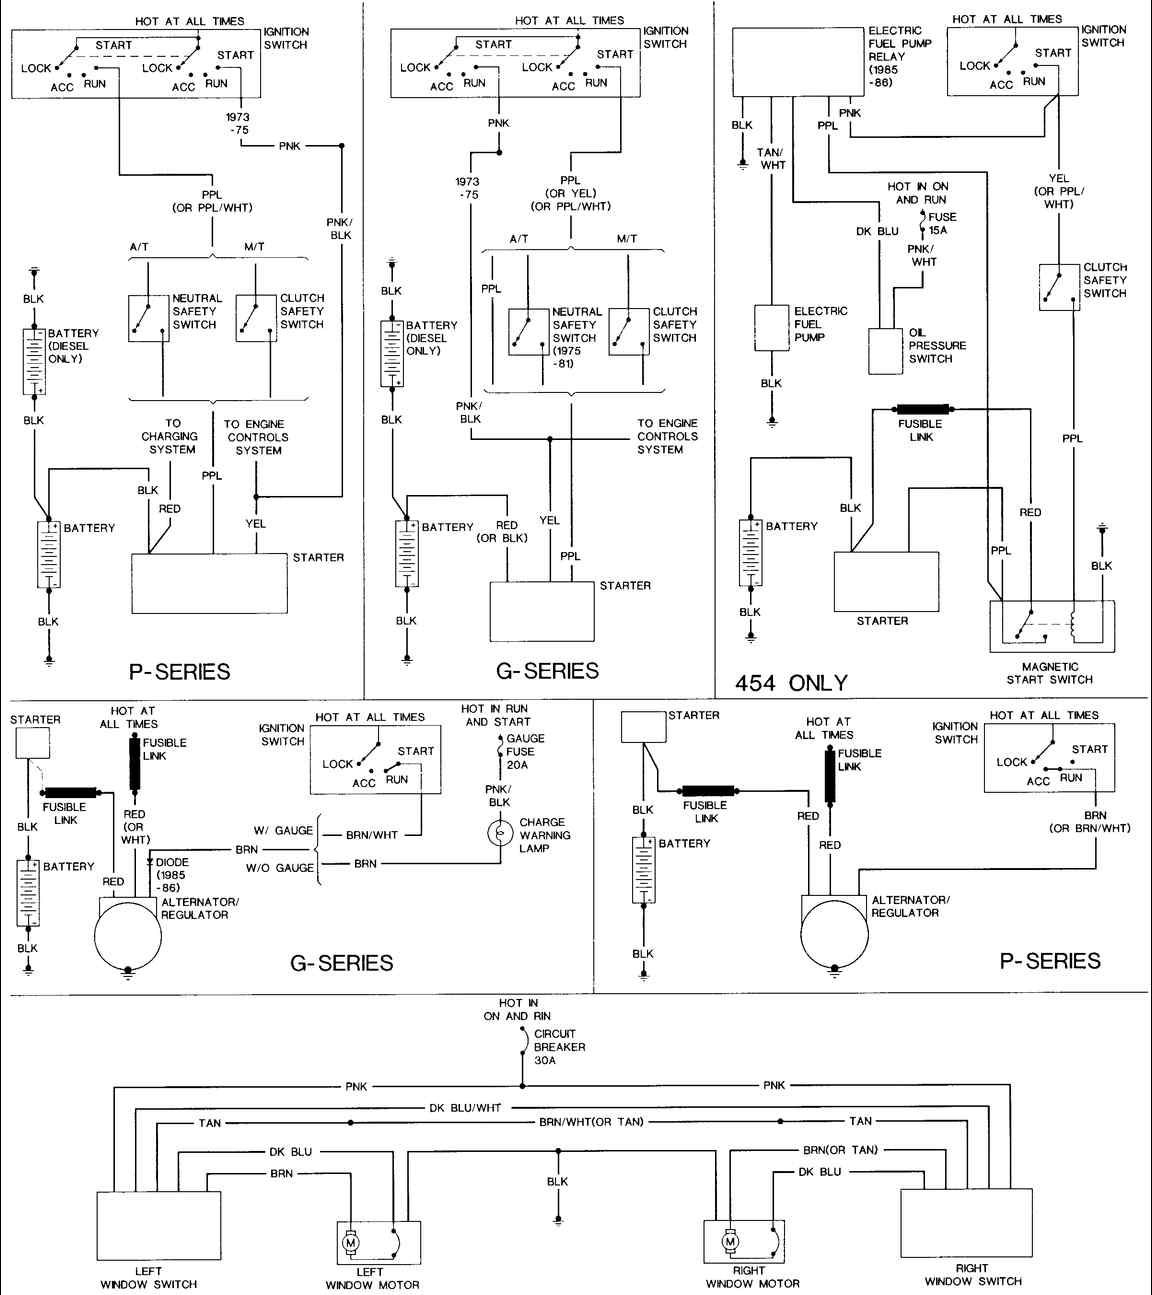 0c73623a181dc376dbb4777e2029d285 85 chevy truck wiring diagram 85 chevy van the steering column chevy starter wiring diagram at n-0.co